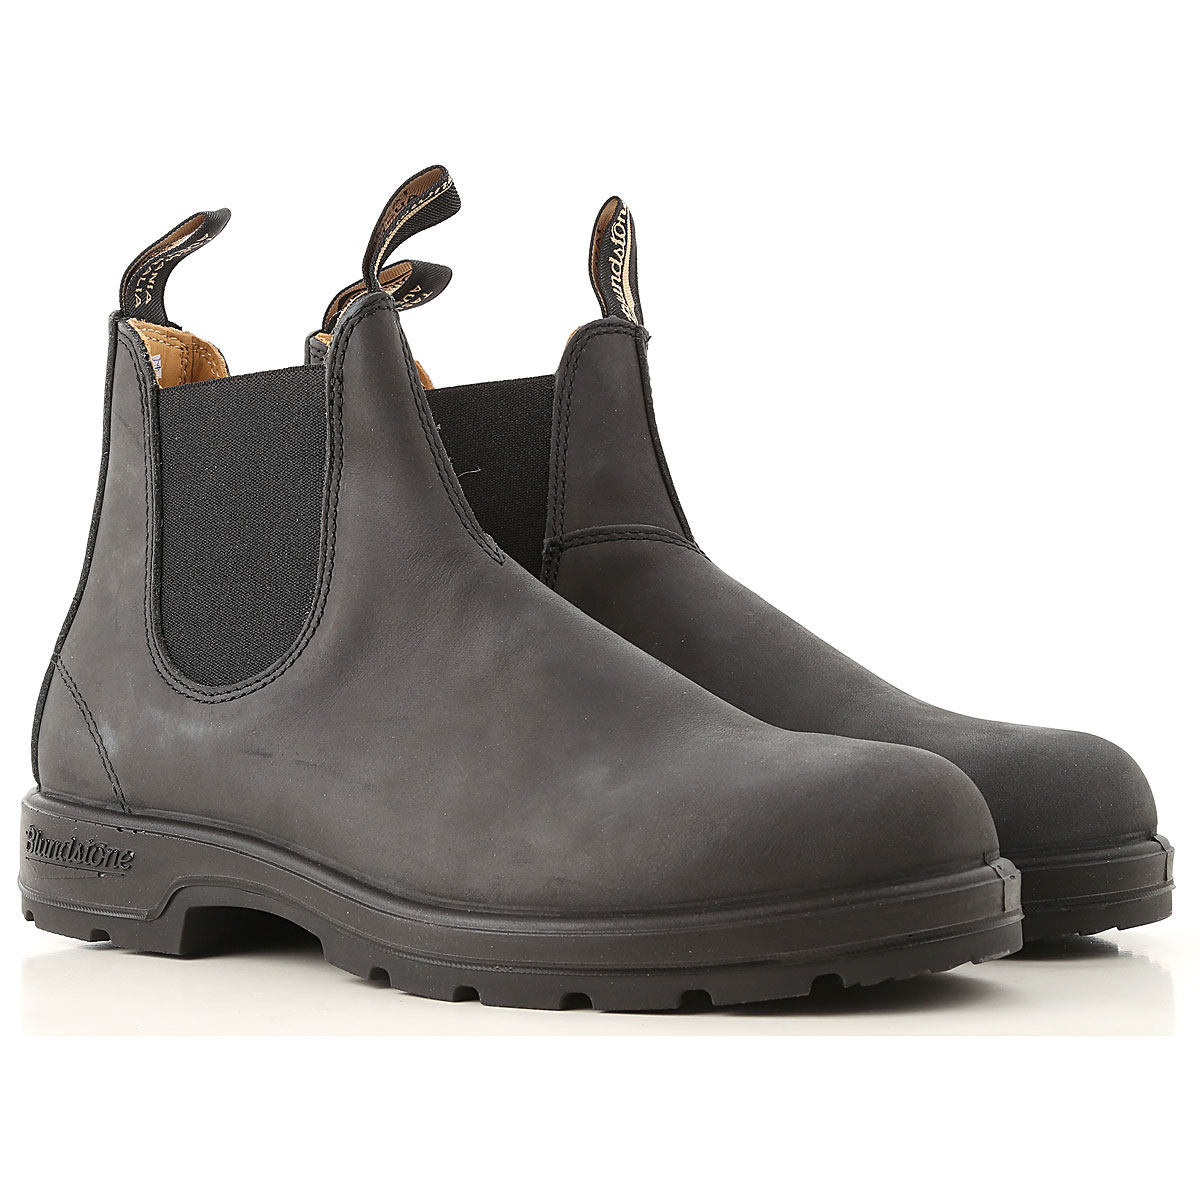 Image of Blundstone Chelsea Boots for Men, Dark Anthracite, Leather, 2017, 10 11 7 7.5 8 9